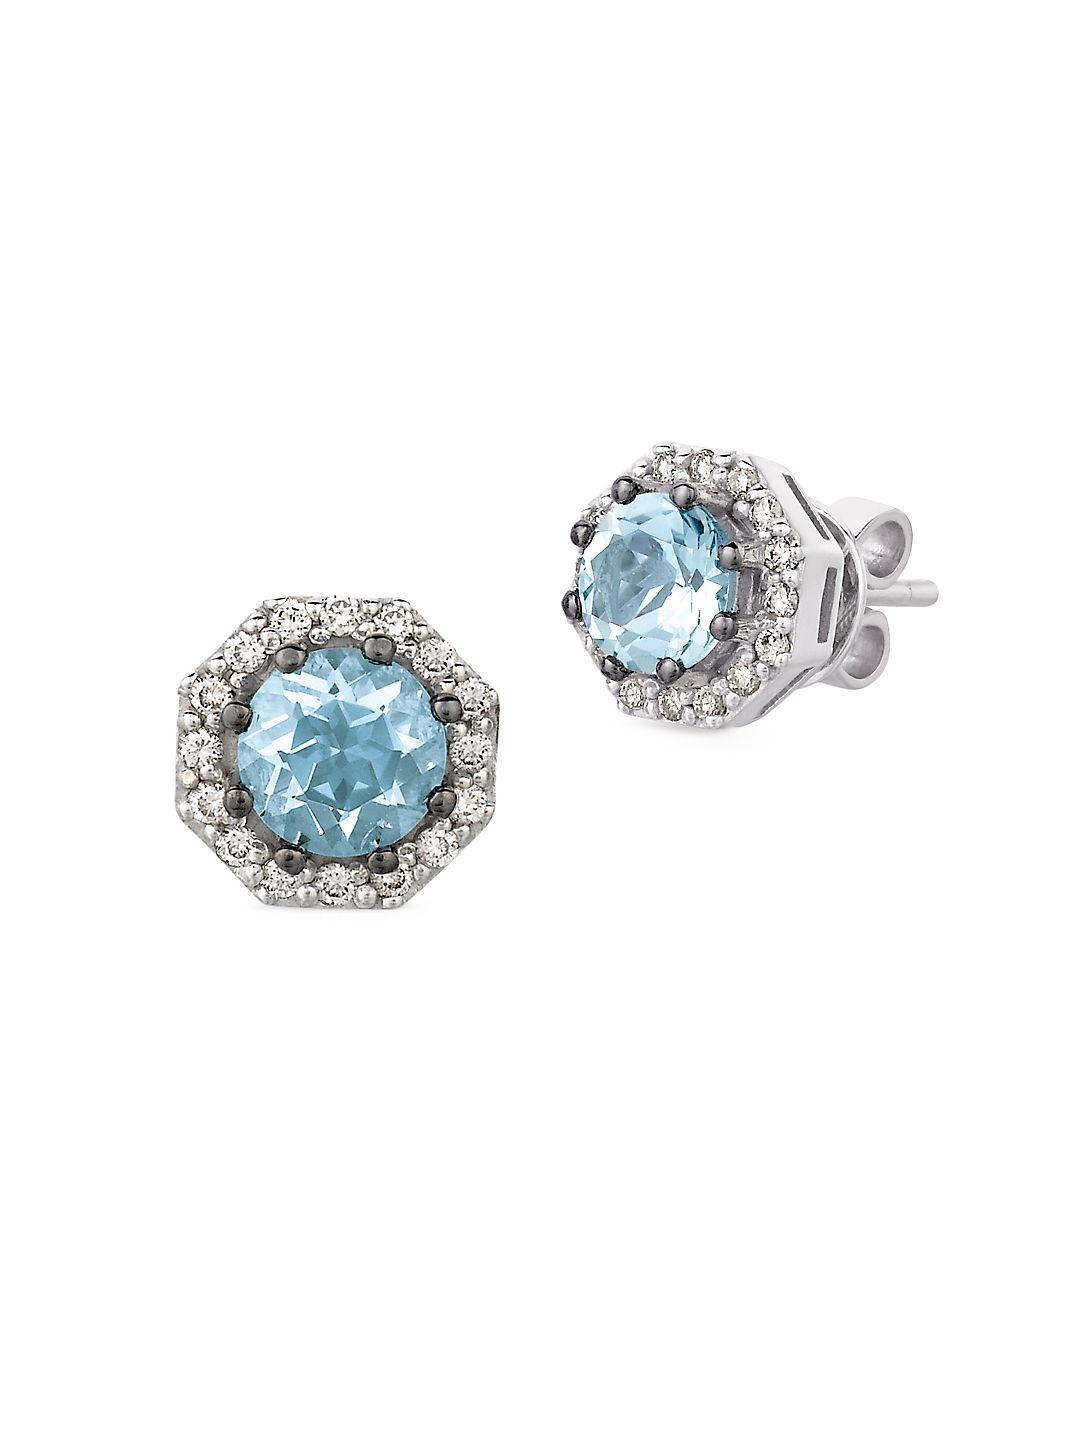 aquamarine marine diamond gallery gold white earrings le vian lyst stud swirl aqua and jewelry blue chocolate